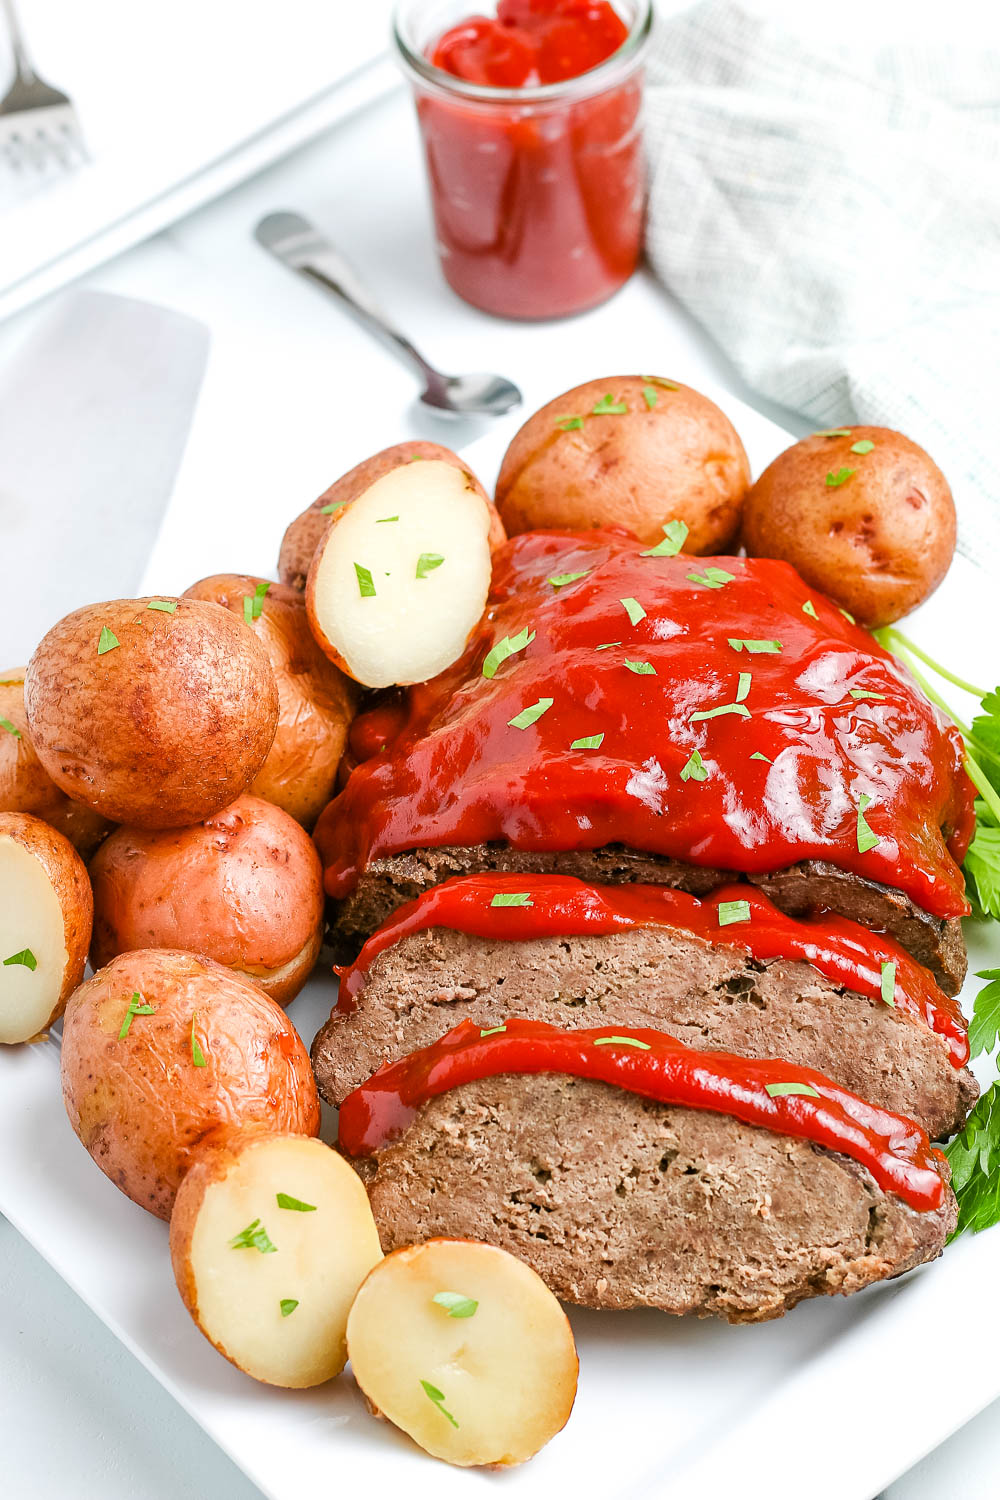 The finished Instant Pot Meatloaf with potatoes on a serving platter.